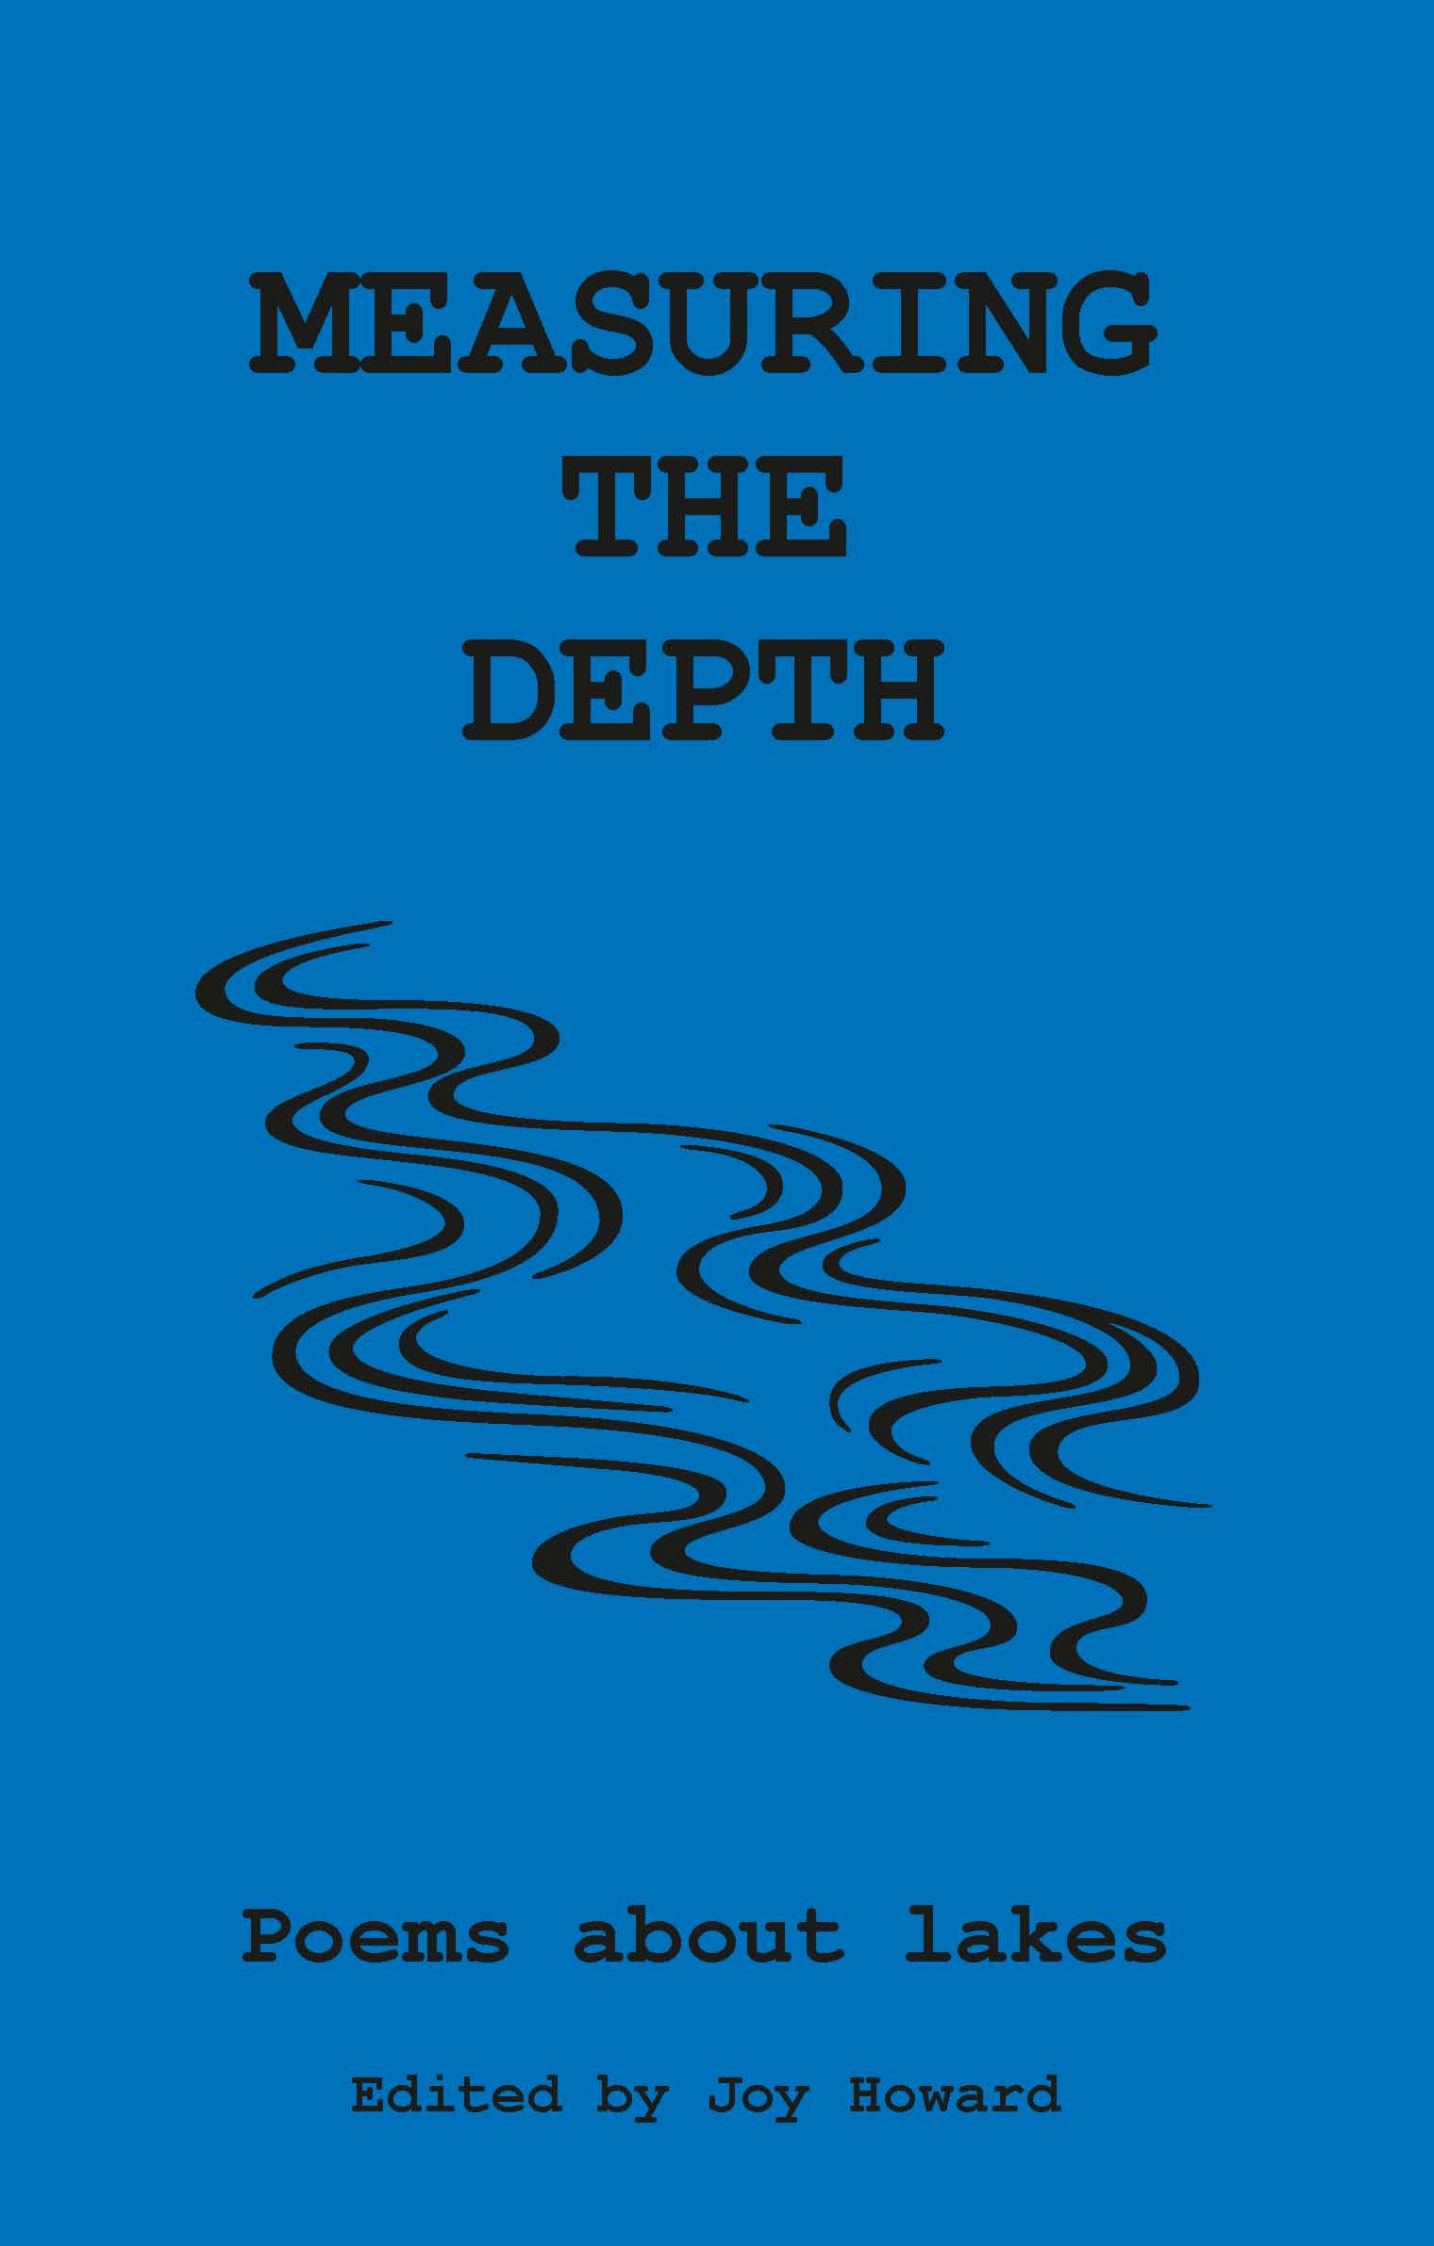 Measuring the Depth